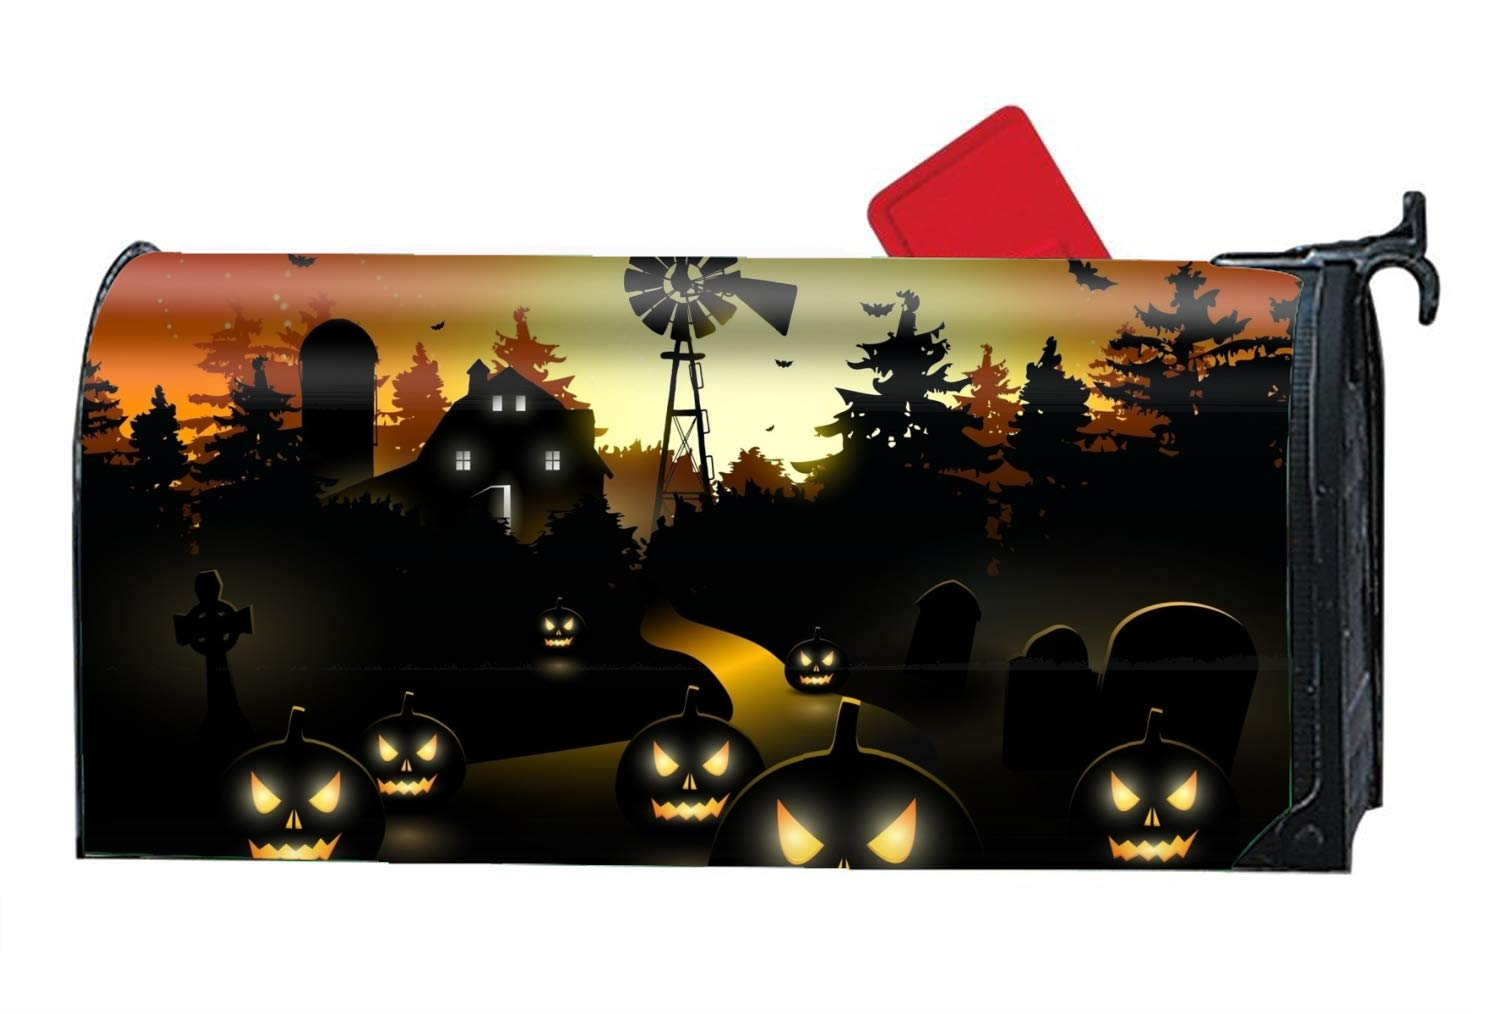 FONDTHEE Holiday Halloween Smiling Pumpkin Lamps Personalized Mailbox Cover Magnetic Spring Summer Fall Winter for Standard Mailboxes